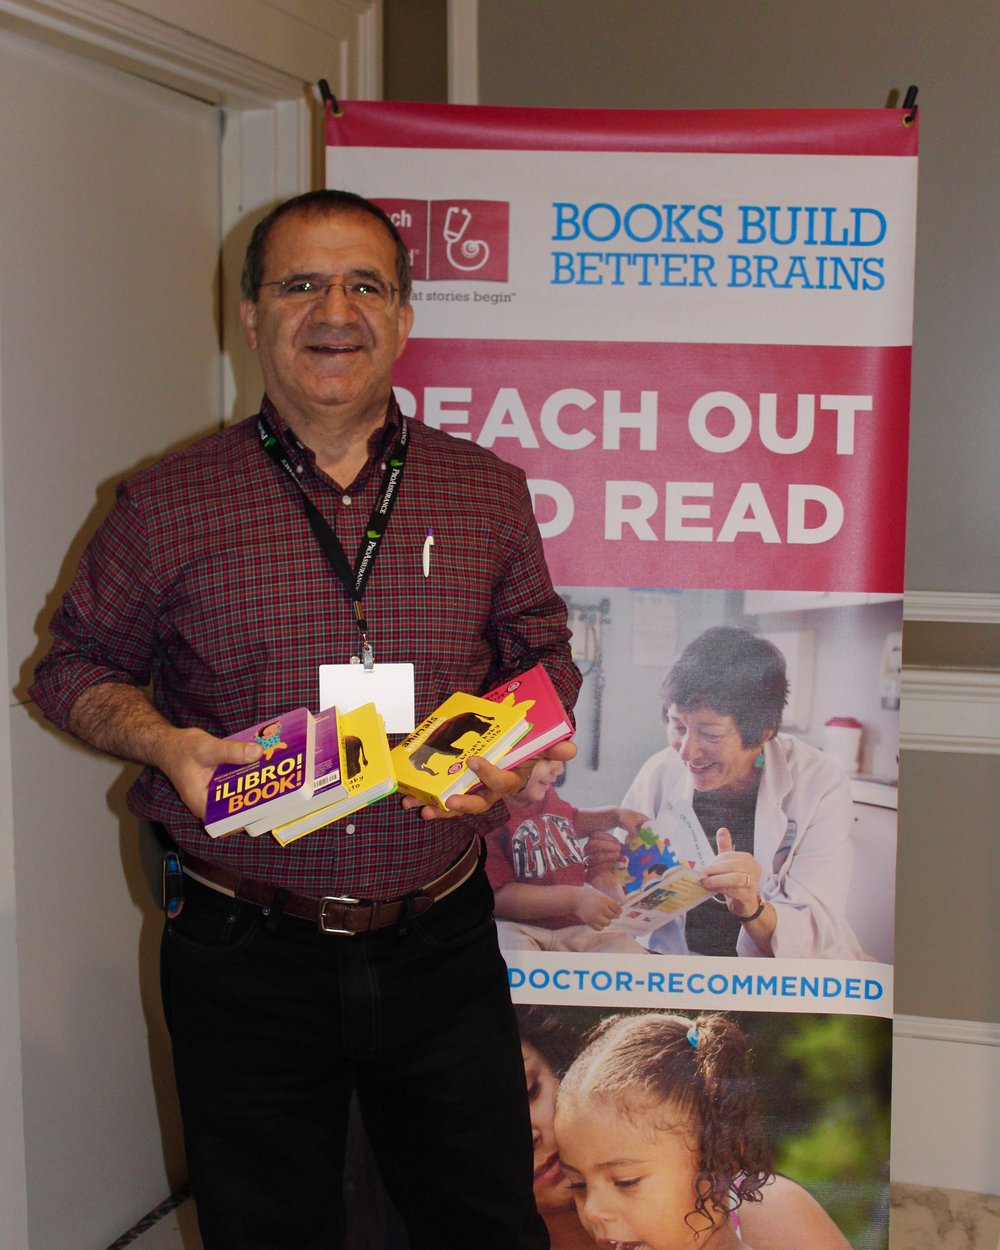 Congrats to Dr. Bashir who was the lucky winner of 100 books from First Book at the Spring meeting of the Alabama Chapter-American Academy of Pediatrics.